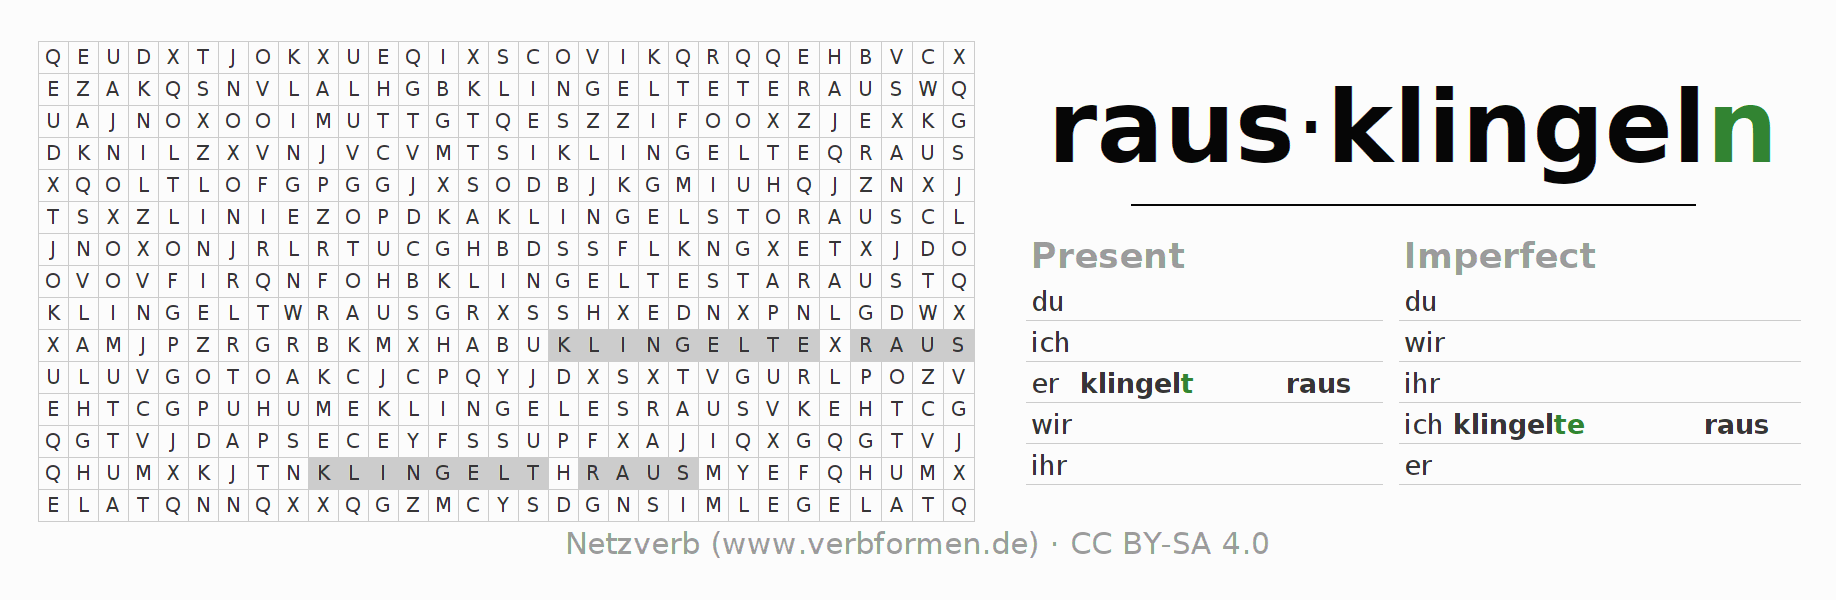 Word search puzzle for the conjugation of the verb rausklingeln